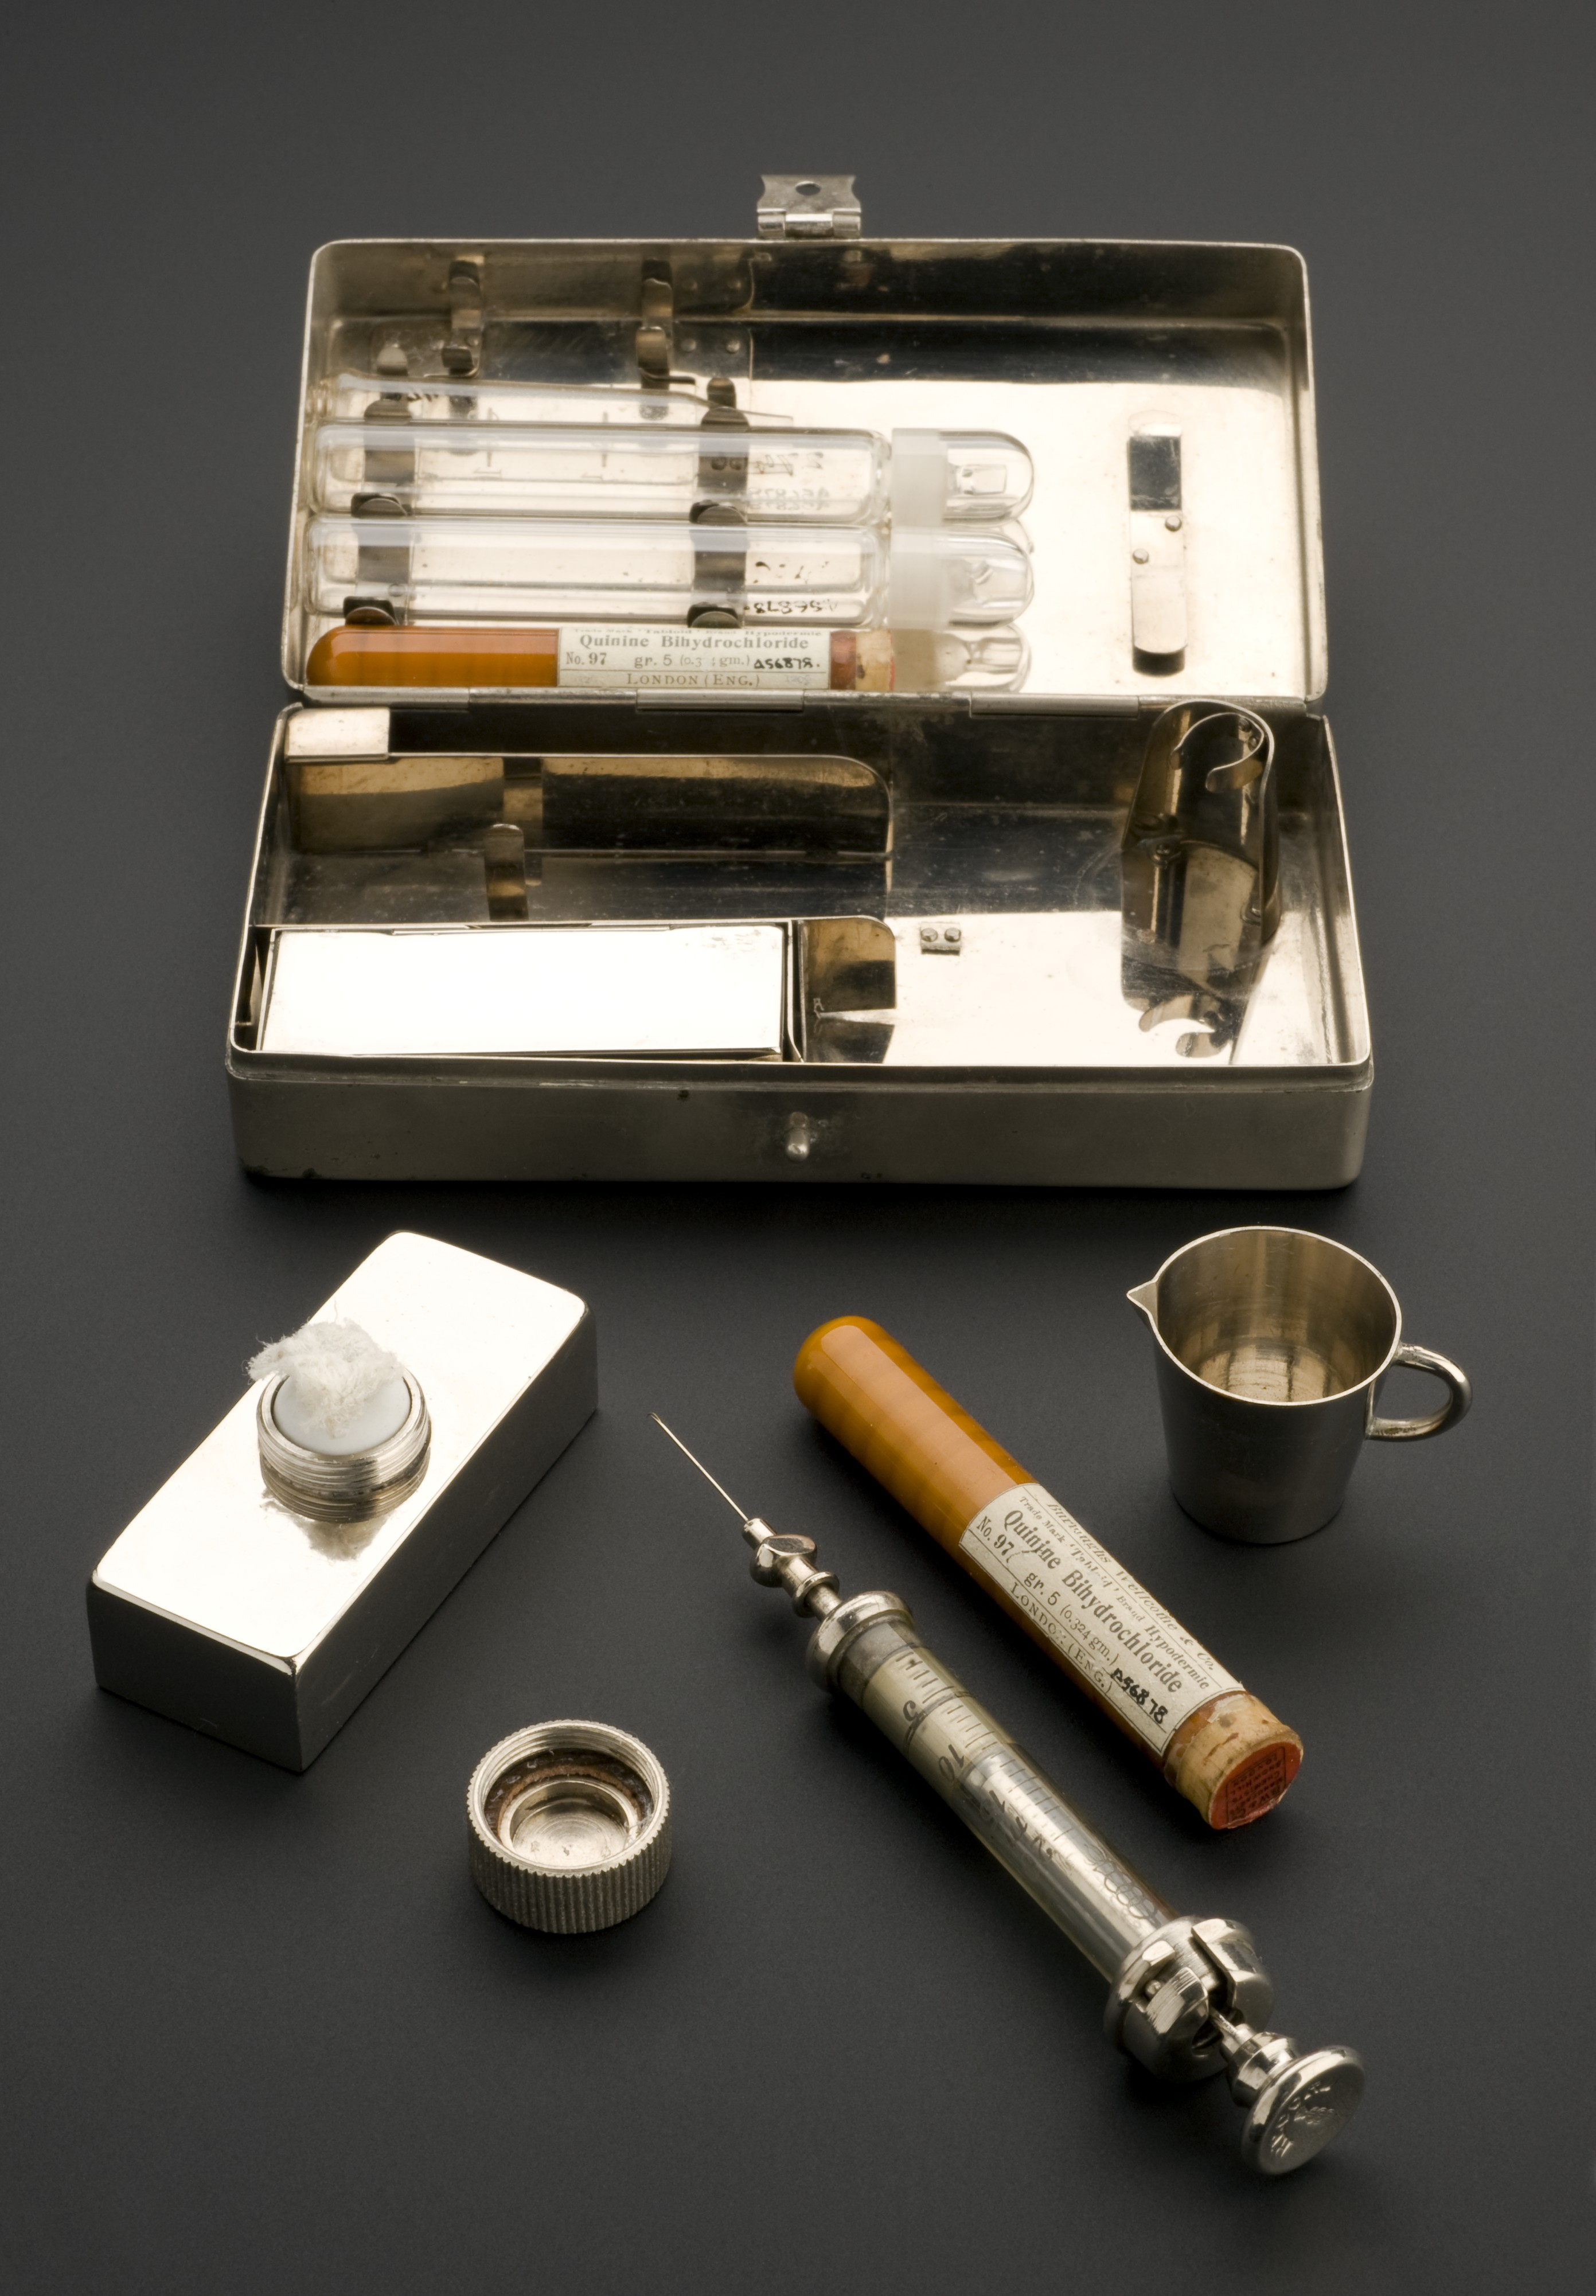 File:Hypodermic syringe set, Berlin, Germany, 1910-1914